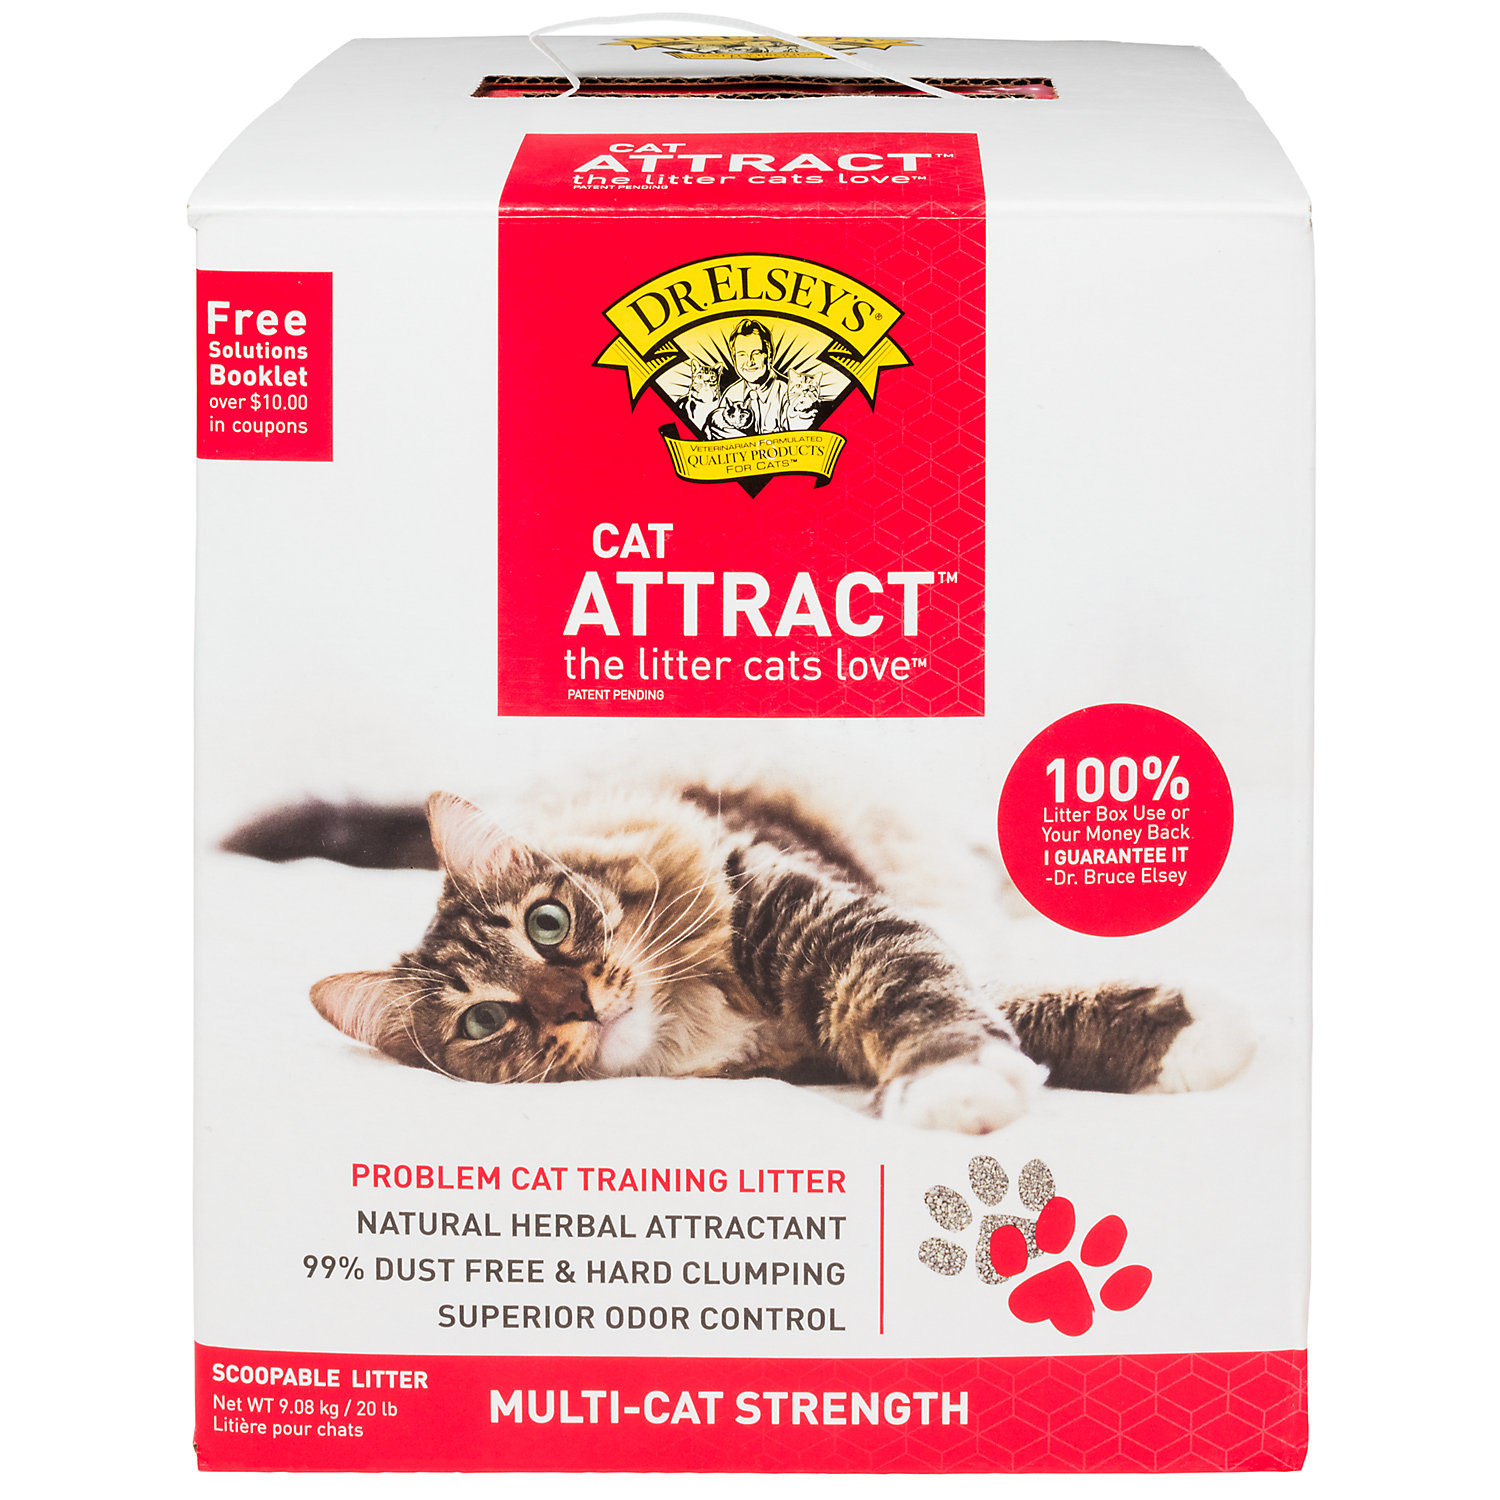 Precious Cat Dr. Elseys Cat Attract Scoopable Cat Litter